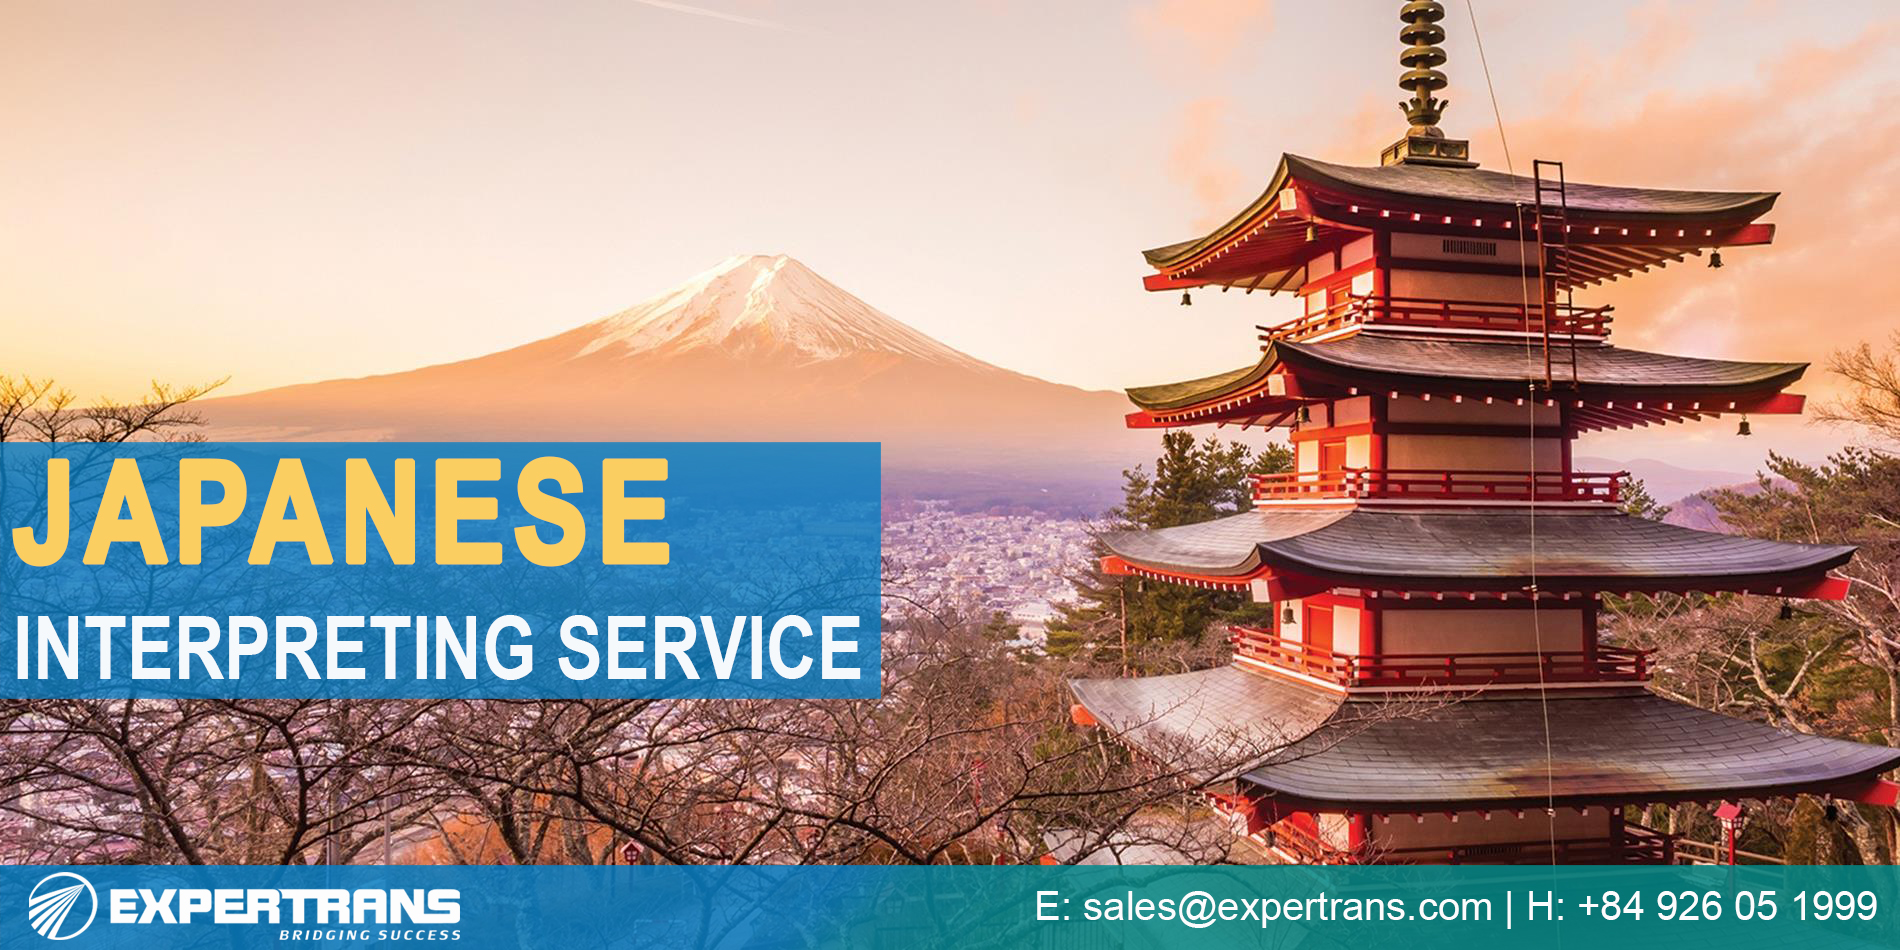 Japanese Interpreting Service